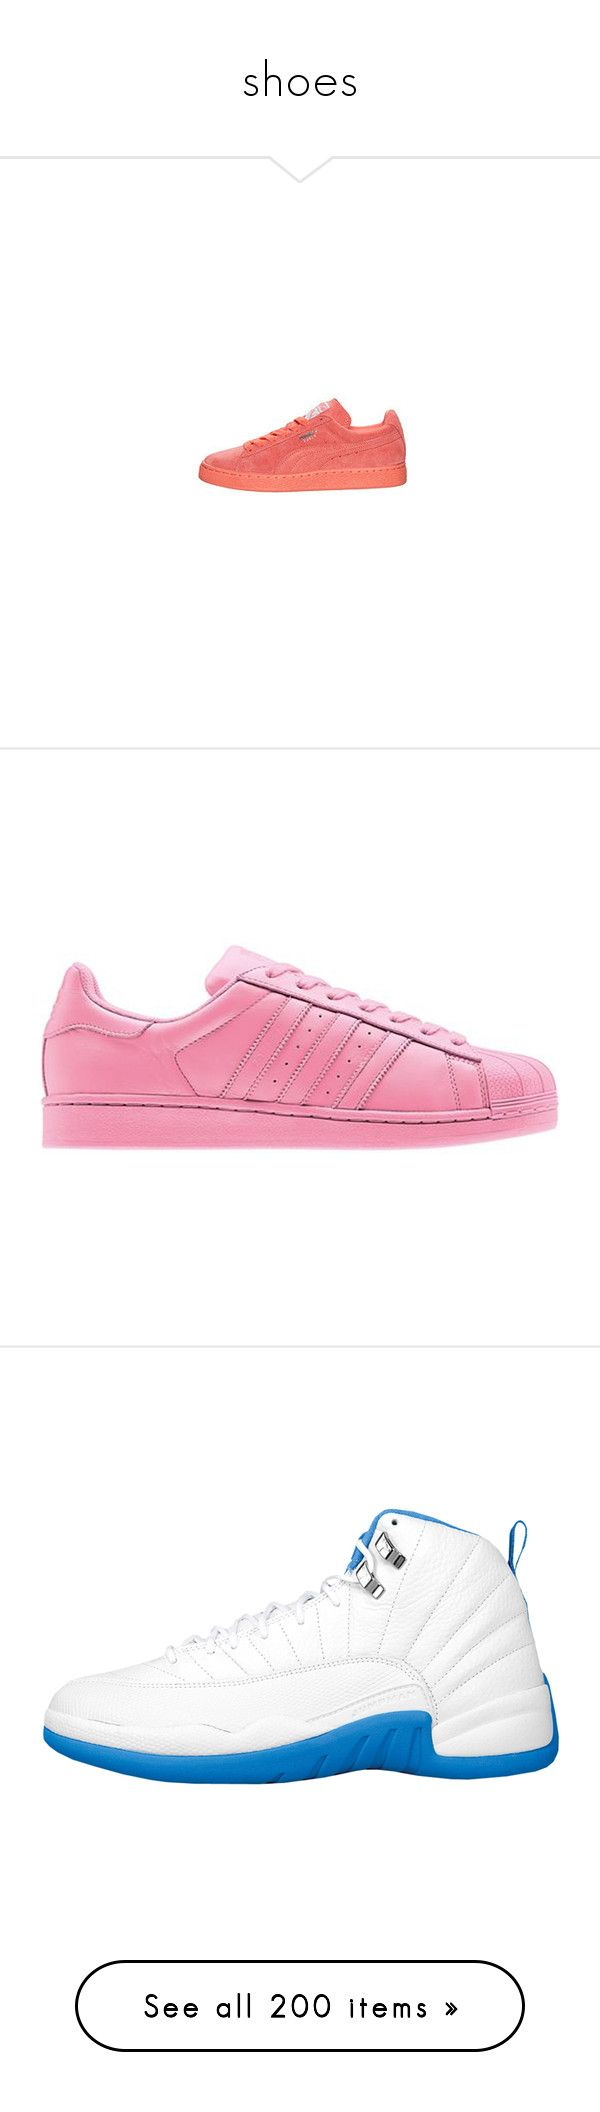 """""""shoes"""" by pimpdaddyk ❤ liked on Polyvore featuring shoes, sneakers, puma, lace up shoes, punk platform shoes, creeper platform shoes, puma shoes, suede shoes, platform trainers and puma trainers"""